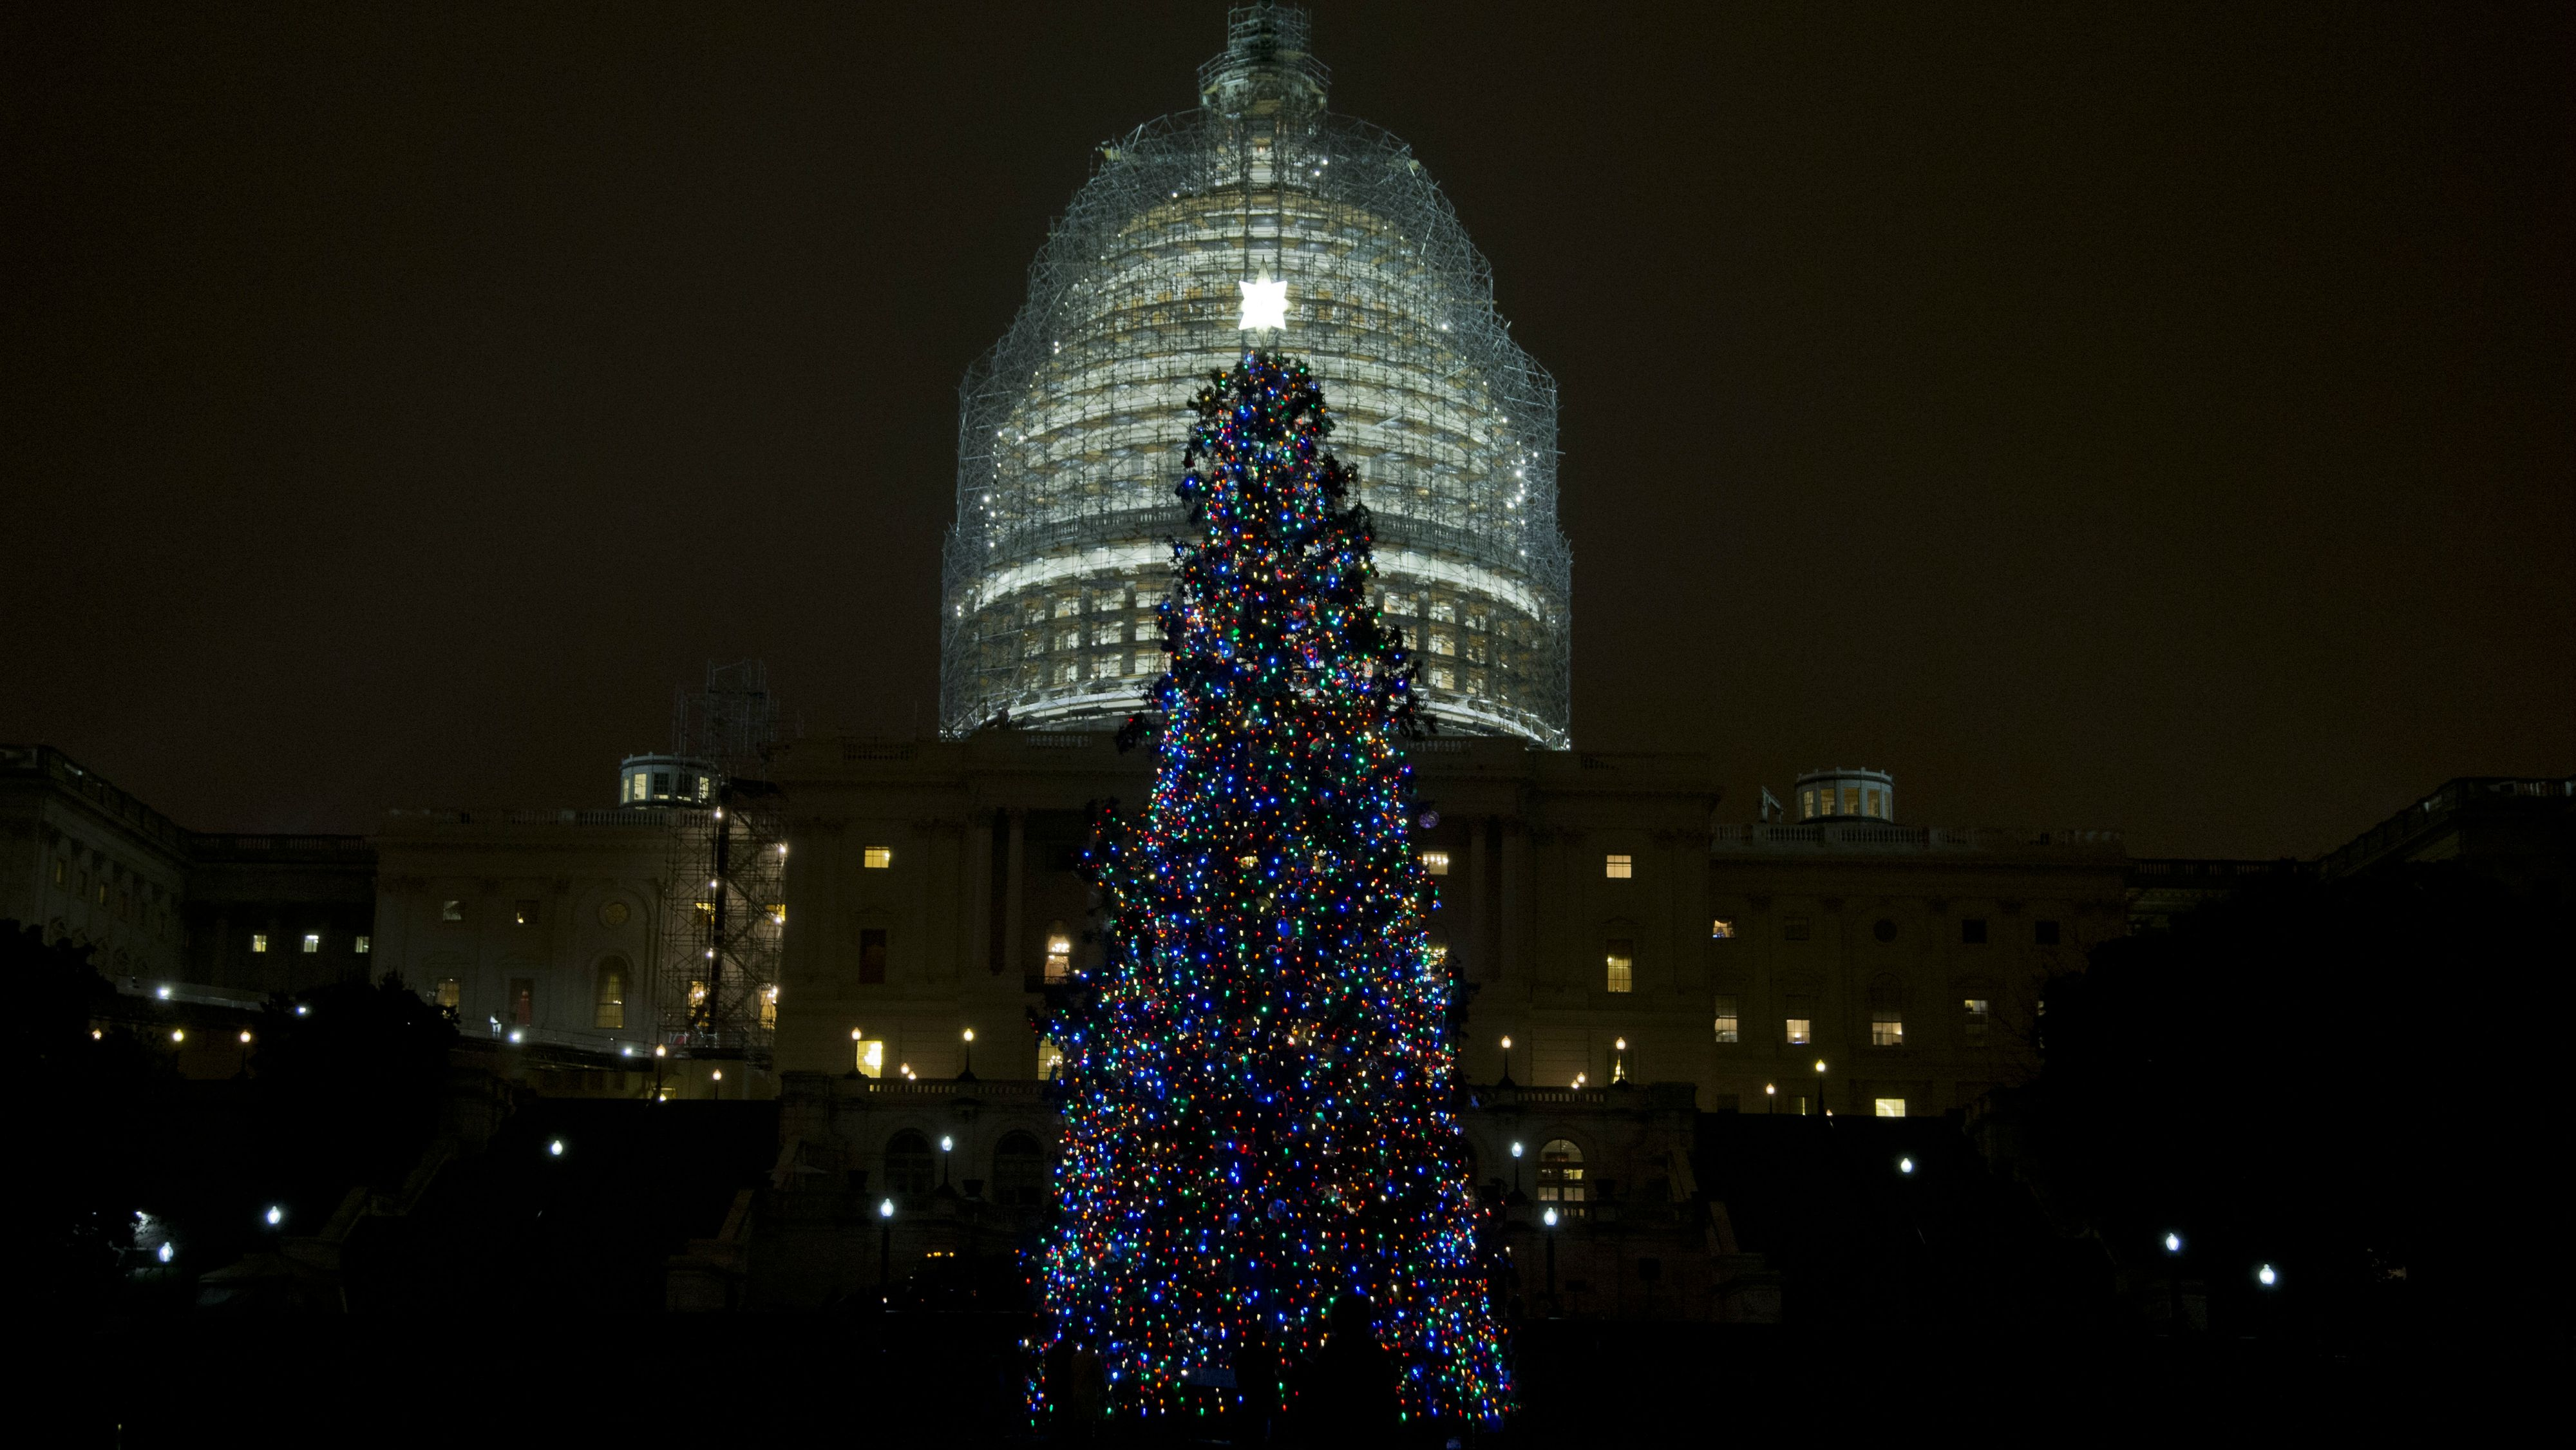 The U.S. Capitol Christmas tree stands after being lit by House Speaker John Boehner and Make-A-Wish Foundation recipient Aaron Urban, 10, from Linthicum, Md., on the West Front of the Capitol in Washington Tuesday, Dec. 2, 2014. The 2014 U.S. Capitol Christmas Tree is an 88-foot white spruce from the Chippewea National Forest in Cass Lake, Minn. (AP Photo/Manuel Balce Ceneta)